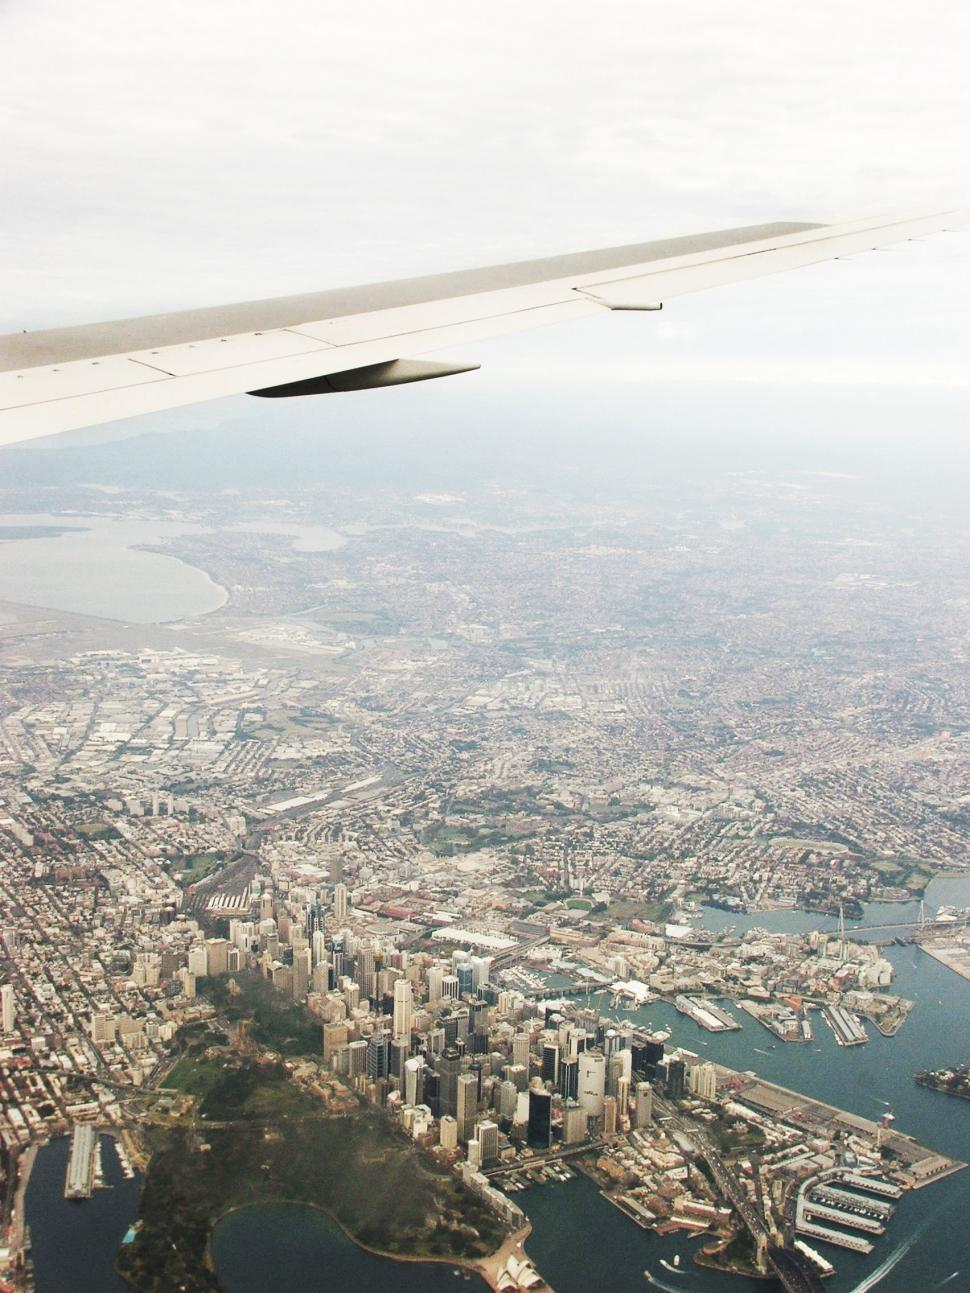 Download Free Stock HD Photo of City birds eye view from plane Online